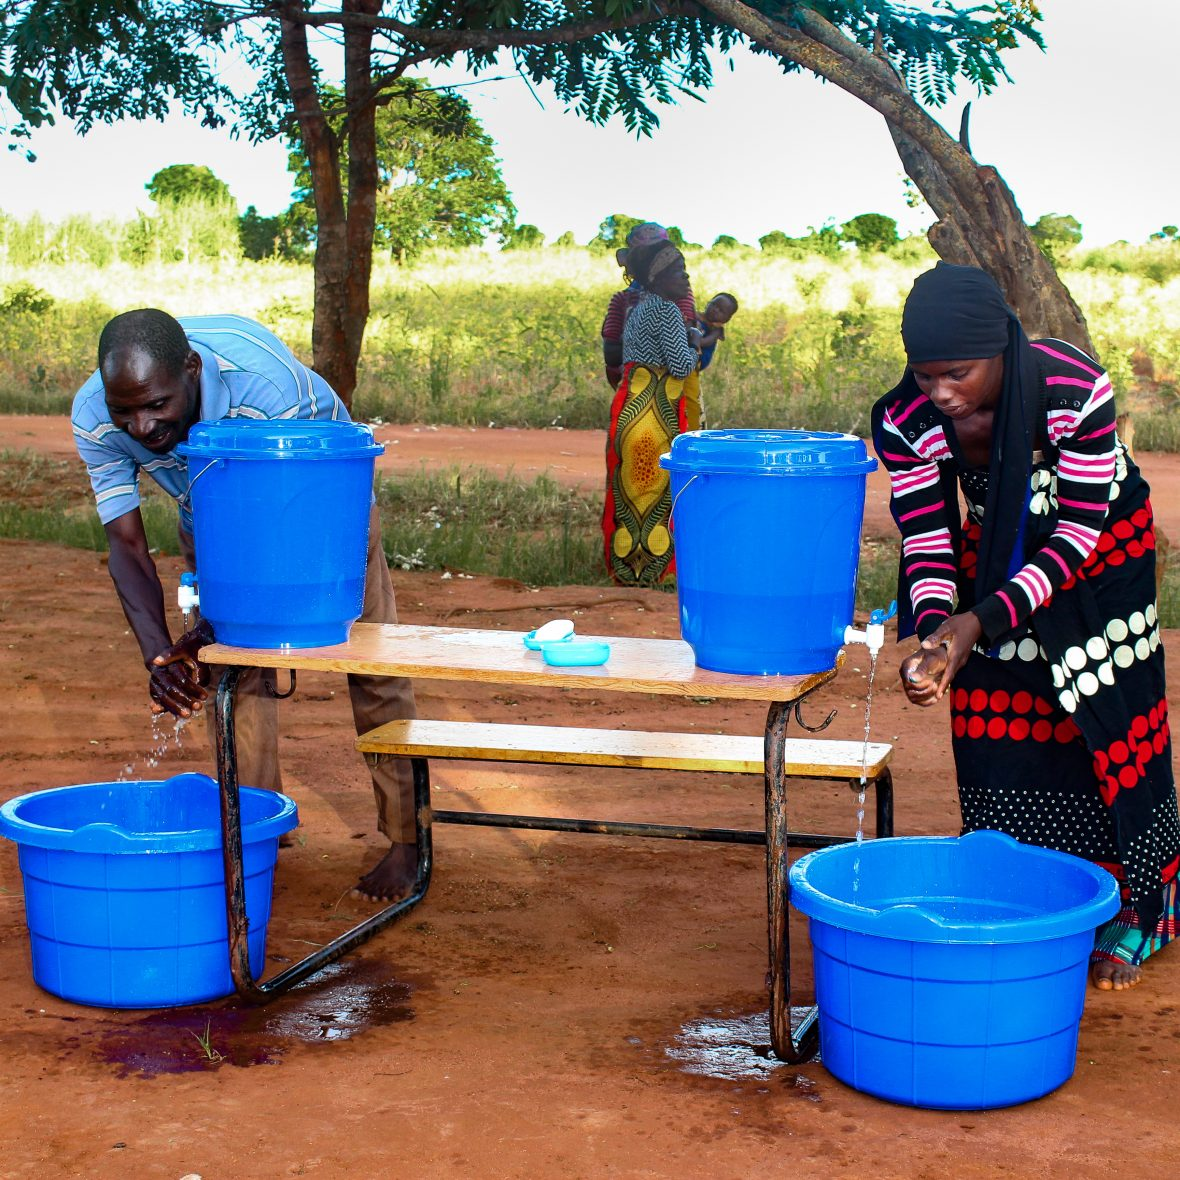 Handwashing station in Malawi